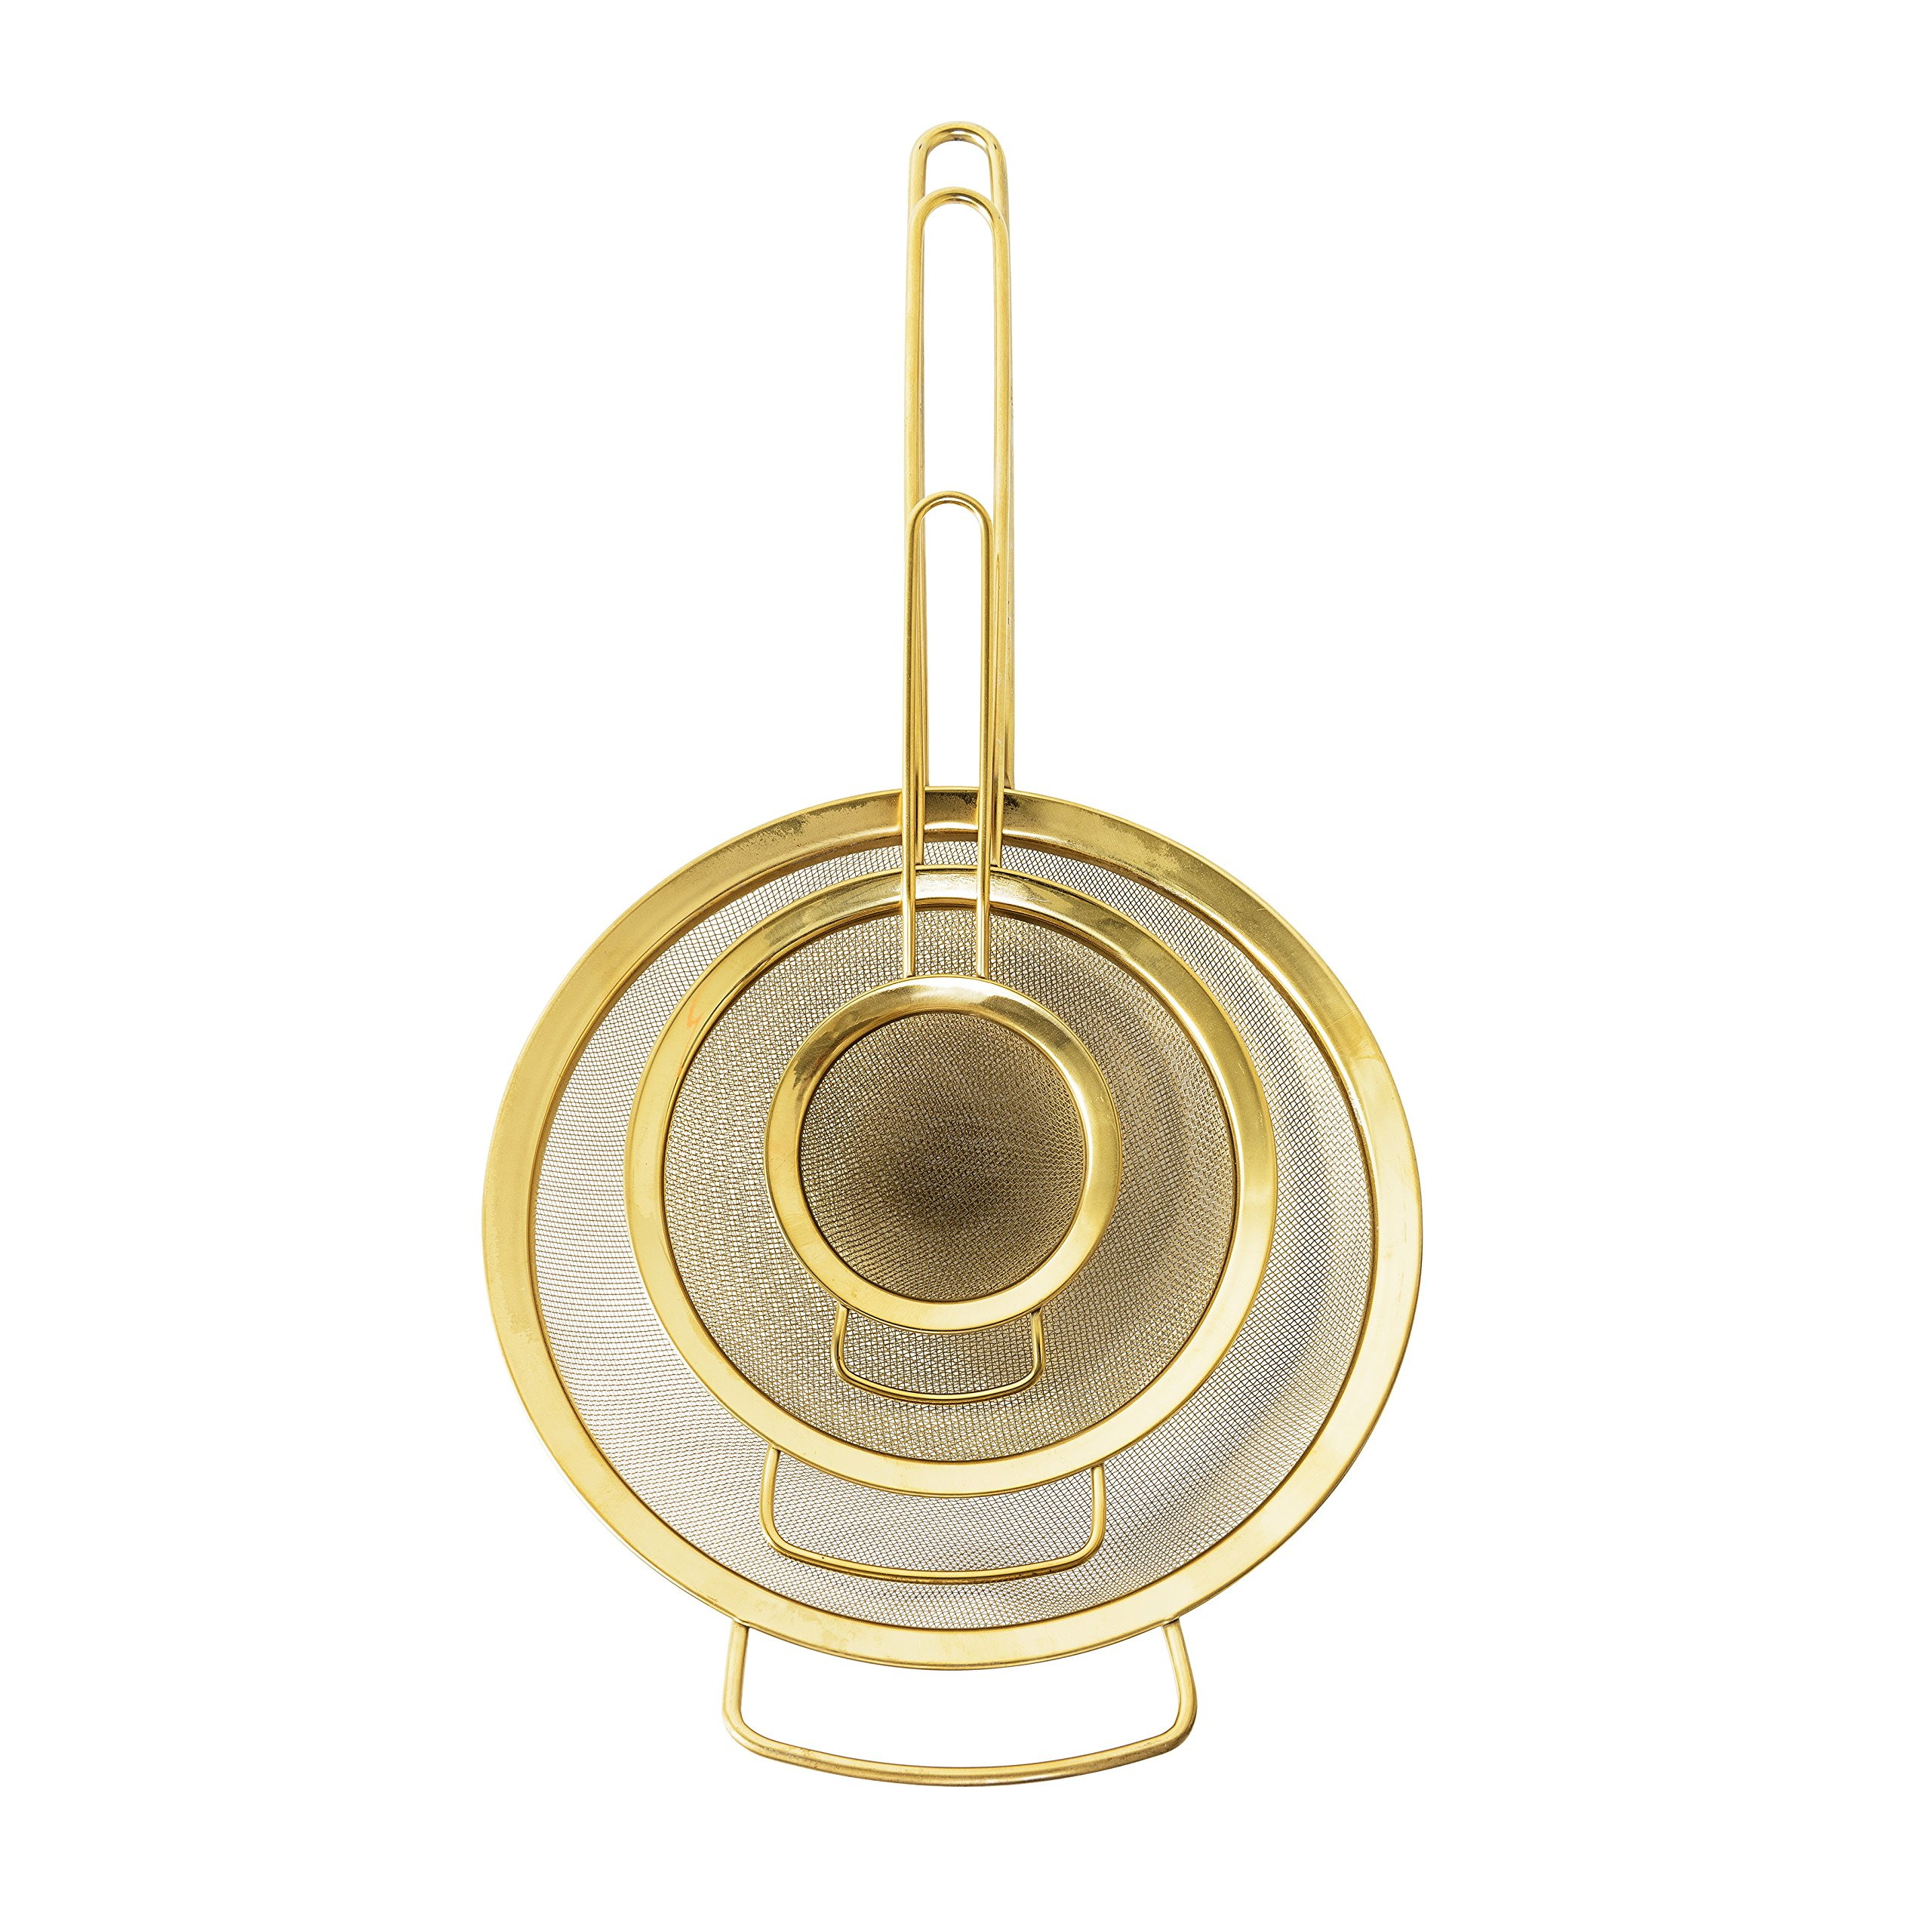 Bloomingville A21183953 Set of 3 Stainless Steel Strainers with Gold Finish